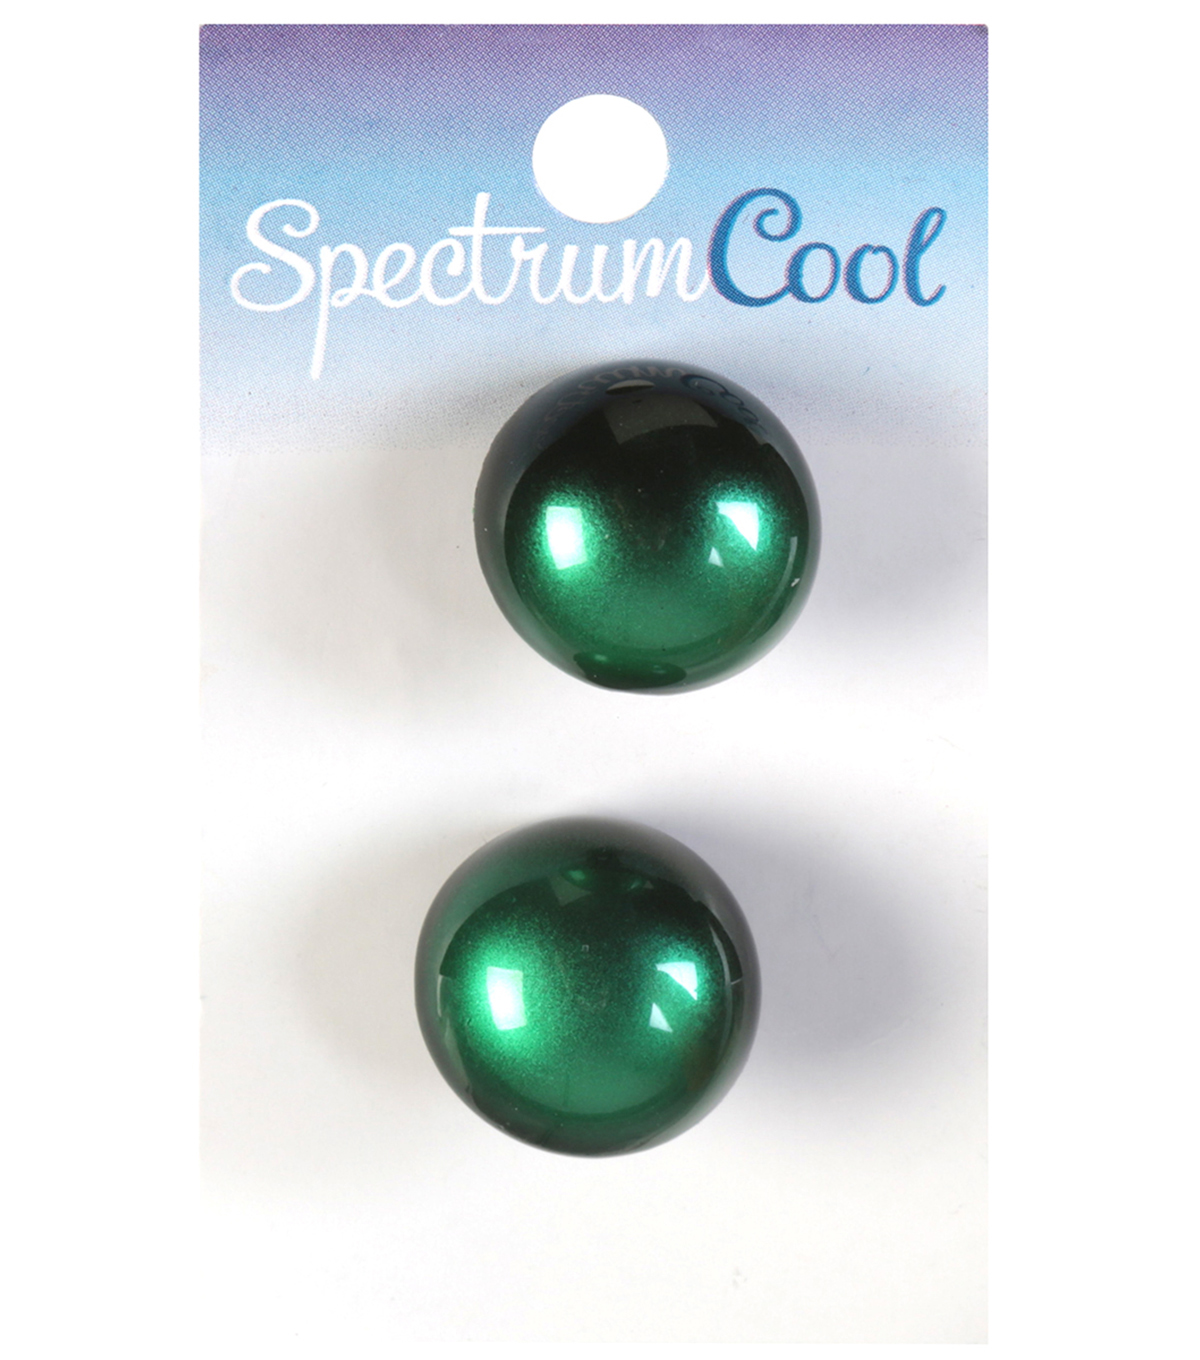 Spectrum Cool Dome Shaped Green Black Obmre Shank Buttons